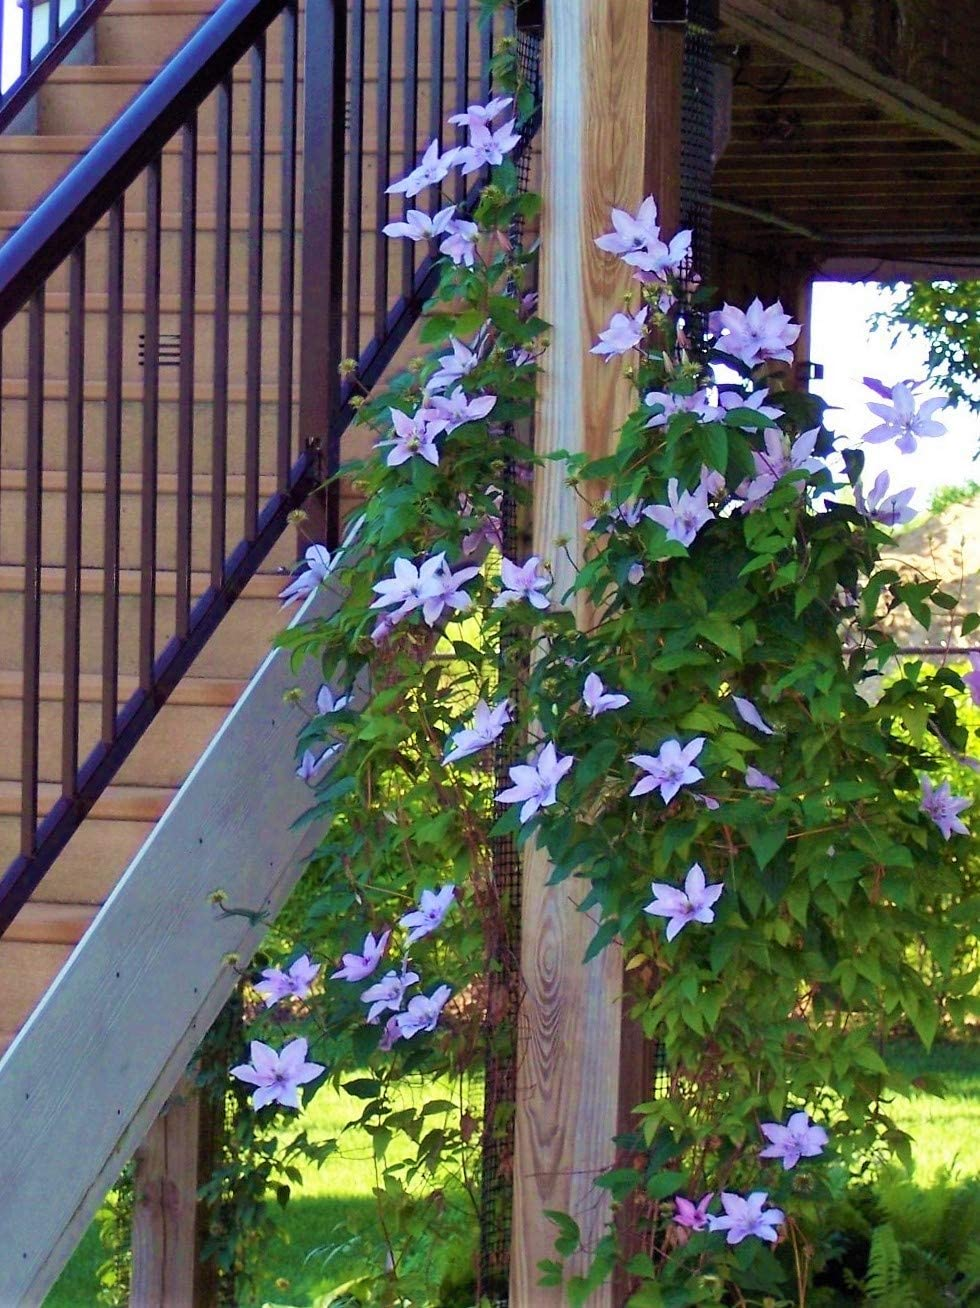 Scroll Trellis Garden Trellis for Narrow Spaces, Deck Posts, Fence Posts, Customizable for Wall and Larger Spaces, Each Plant Support is 108 inches x 4 inches x 2 inches (2 Trellises)